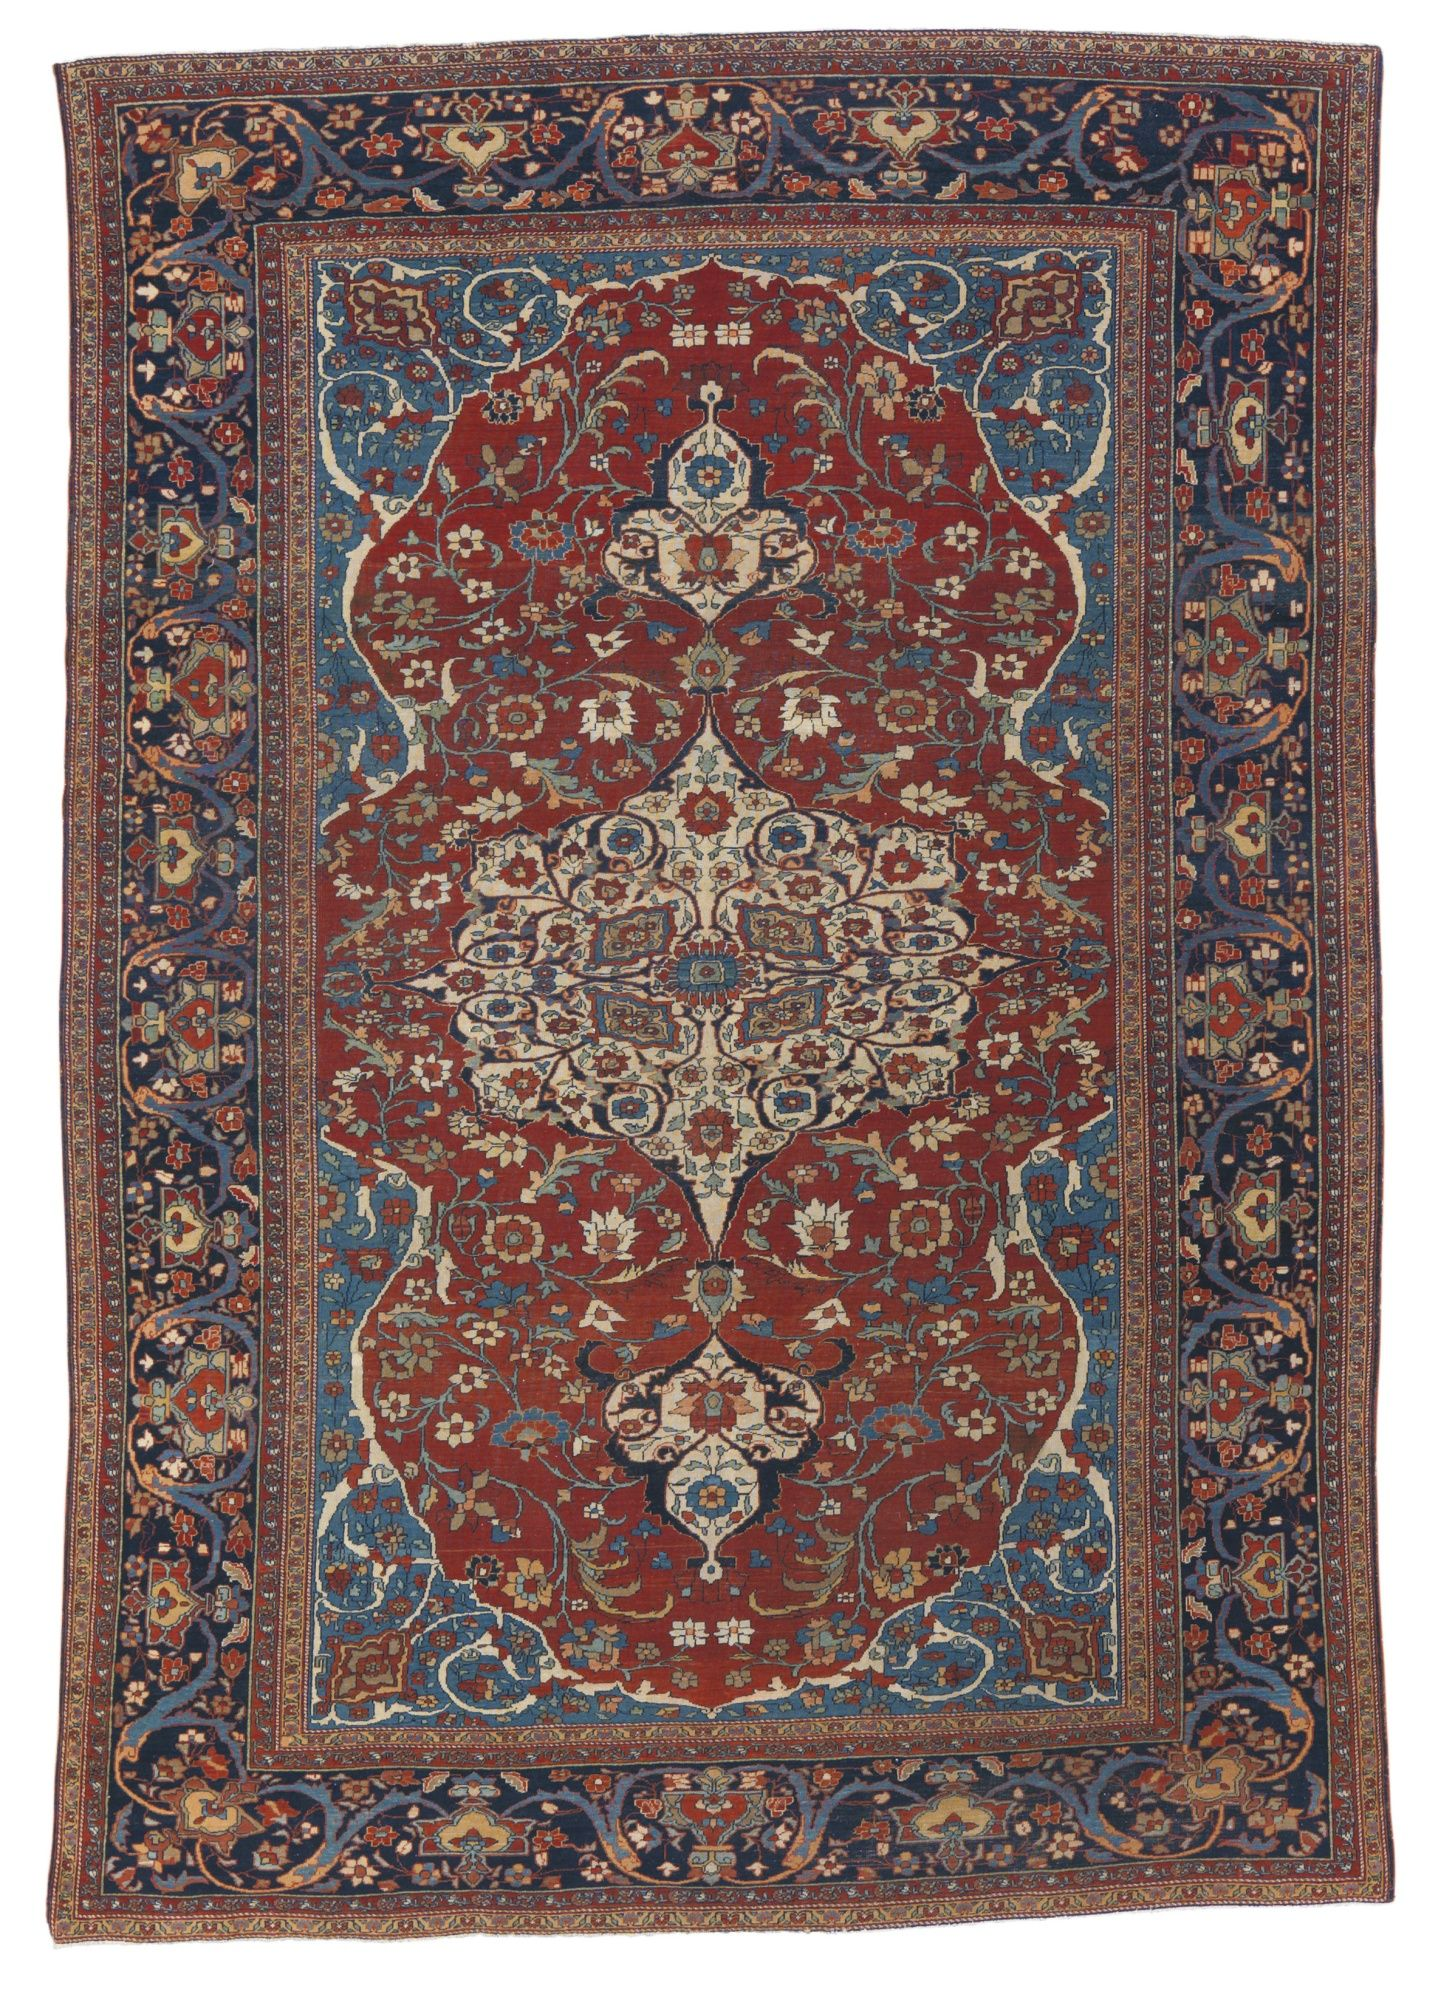 Sarouk Fereghan Carpet North Persia Approximately 10ft By 7ft 3 05 By 2 13m Circa 1890 Asian Rugs Carpet Fabric Carpet